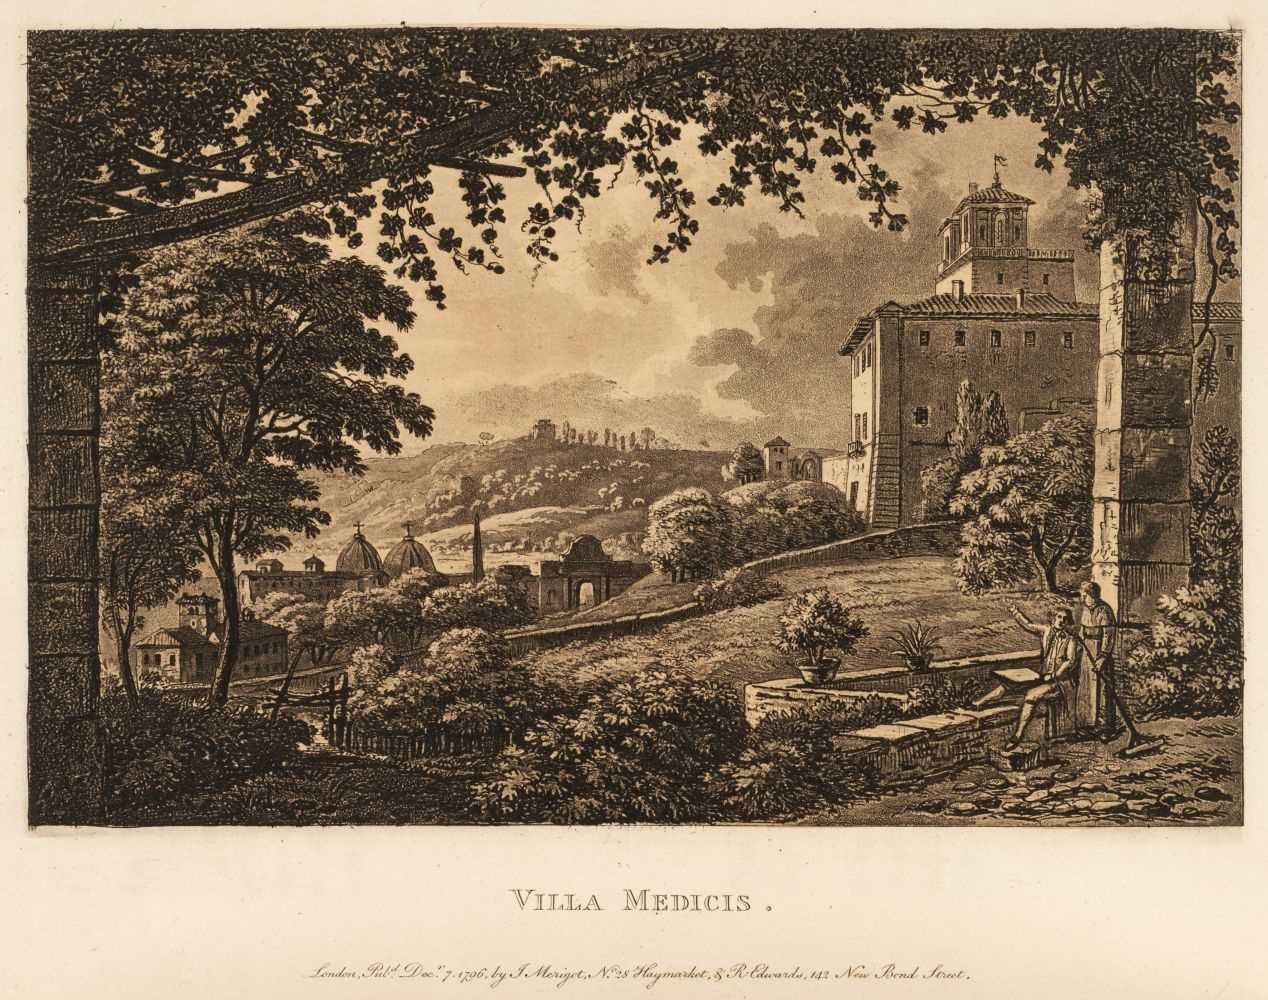 Lot 24 - Merigot (James). A Select Collection of Views and Ruins in Rome and its vicinity, circa 1815-17